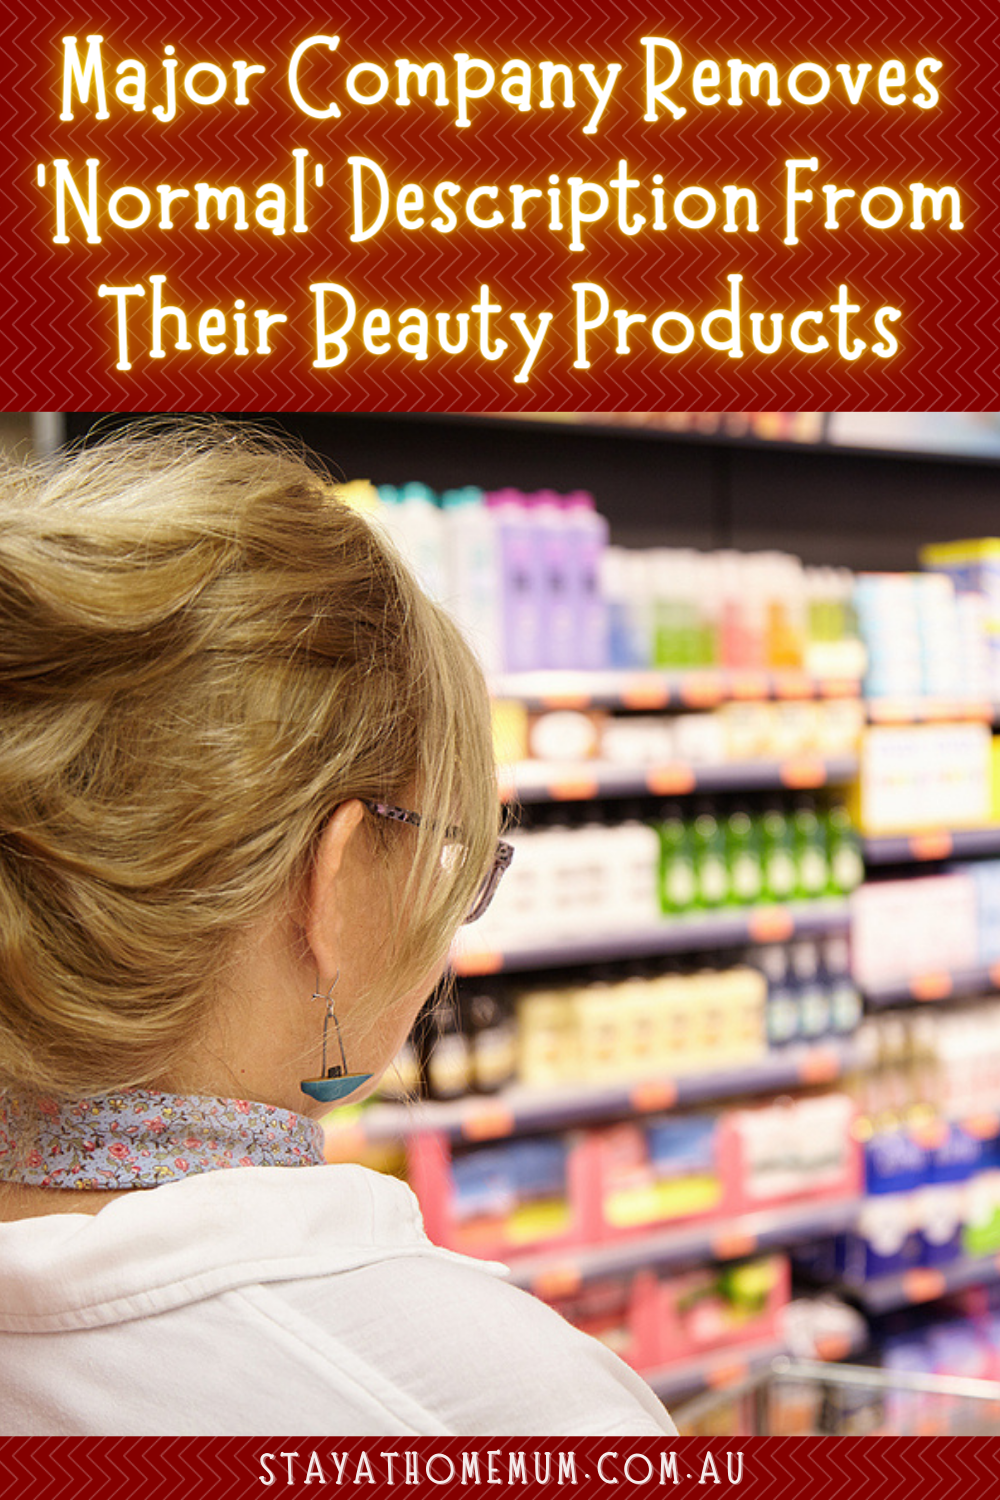 Major Company Removes 'Normal' Description From Their Beauty Products | Stay At Home Mum